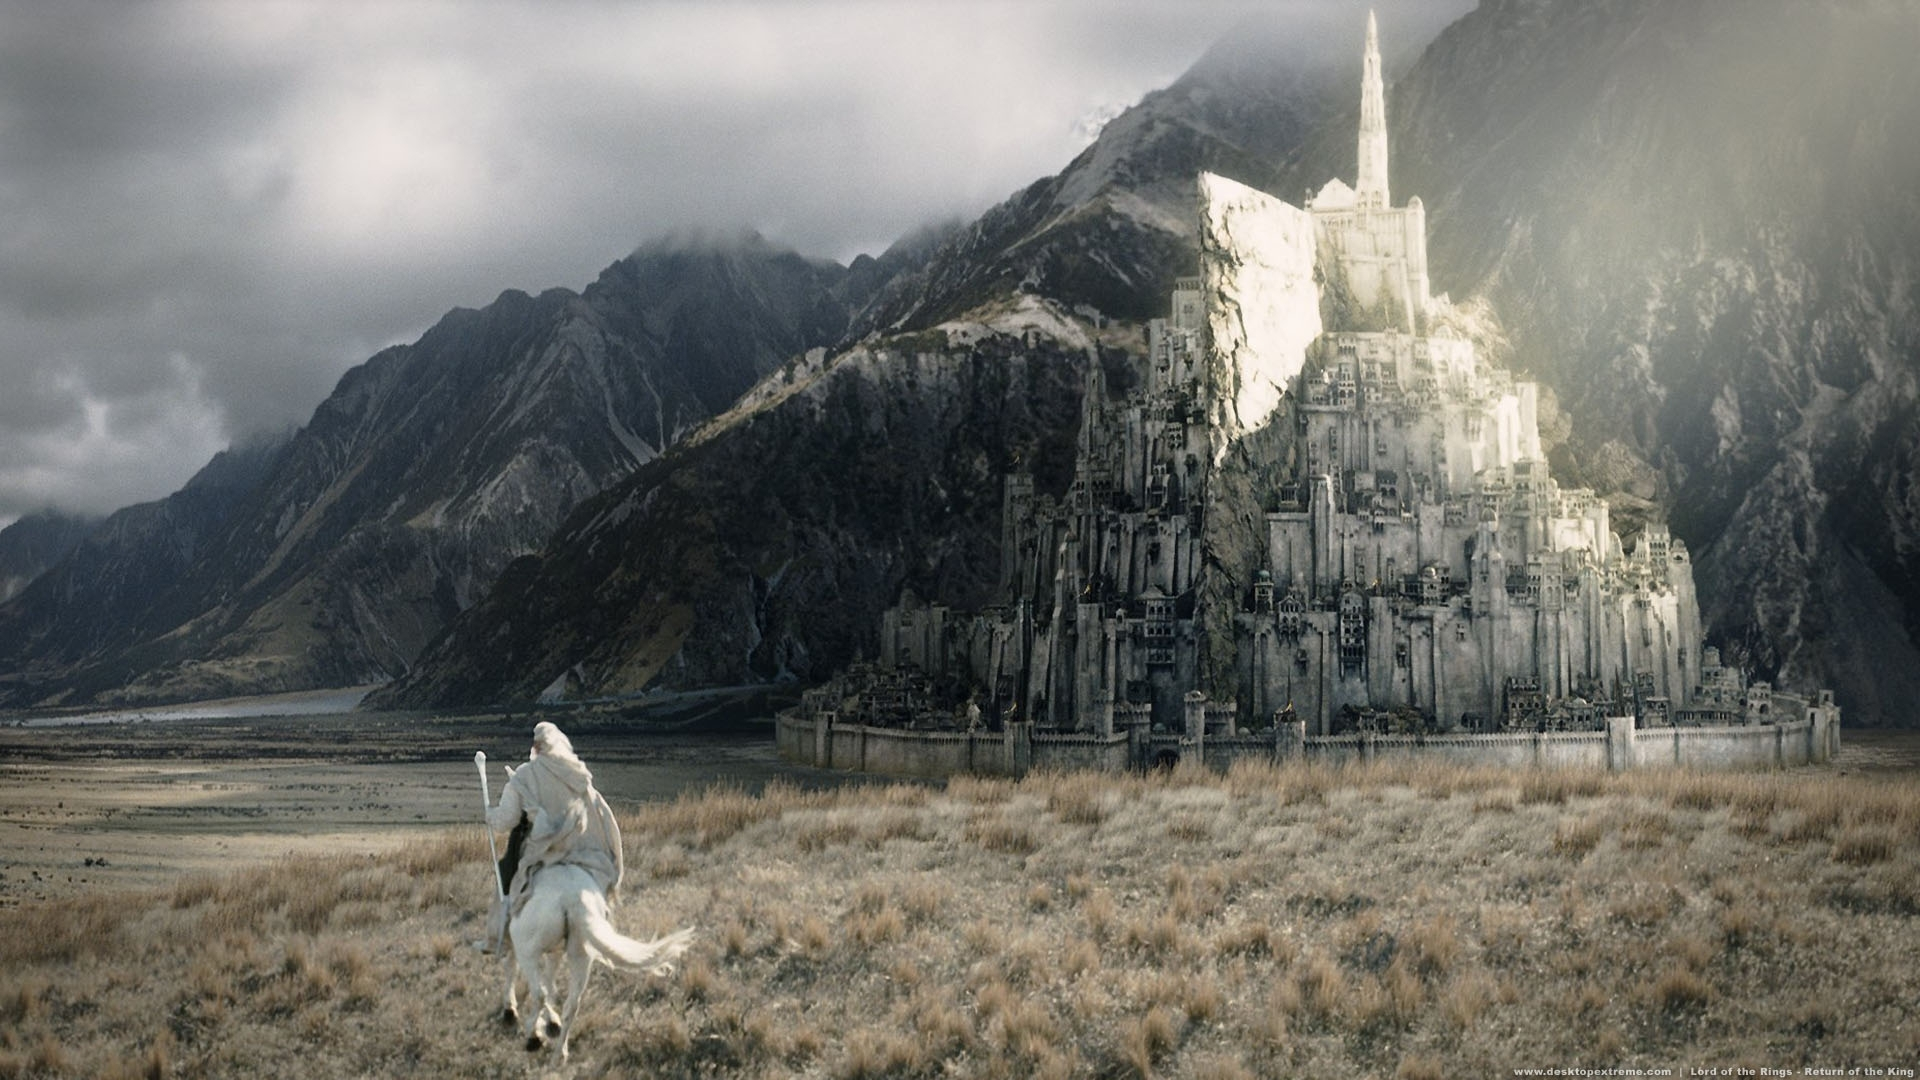 the lord of the rings: the return of the king full hd wallpaper and